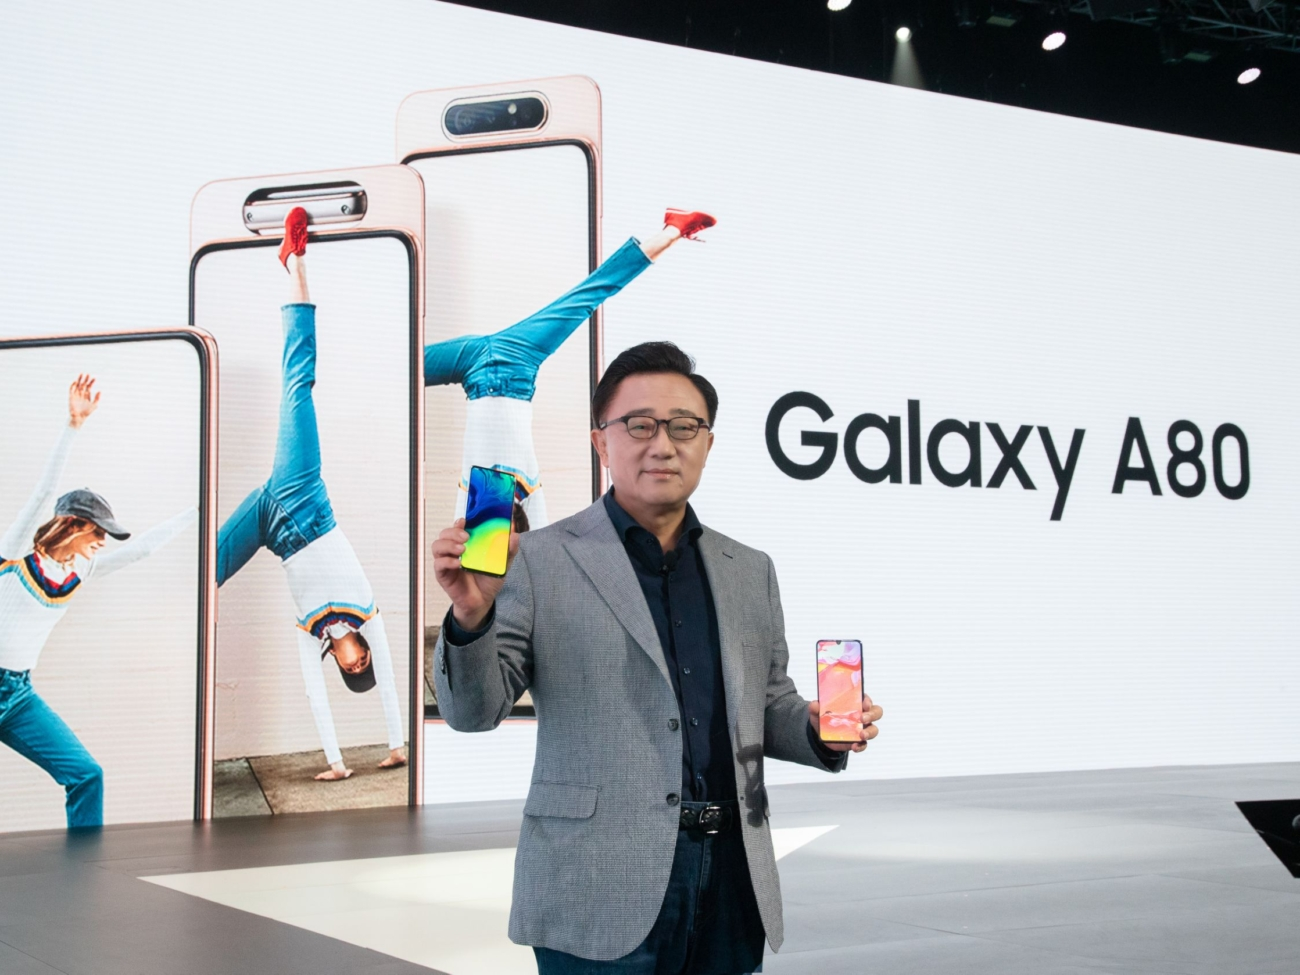 pr-samsung-launched-galaxy-a80-00013